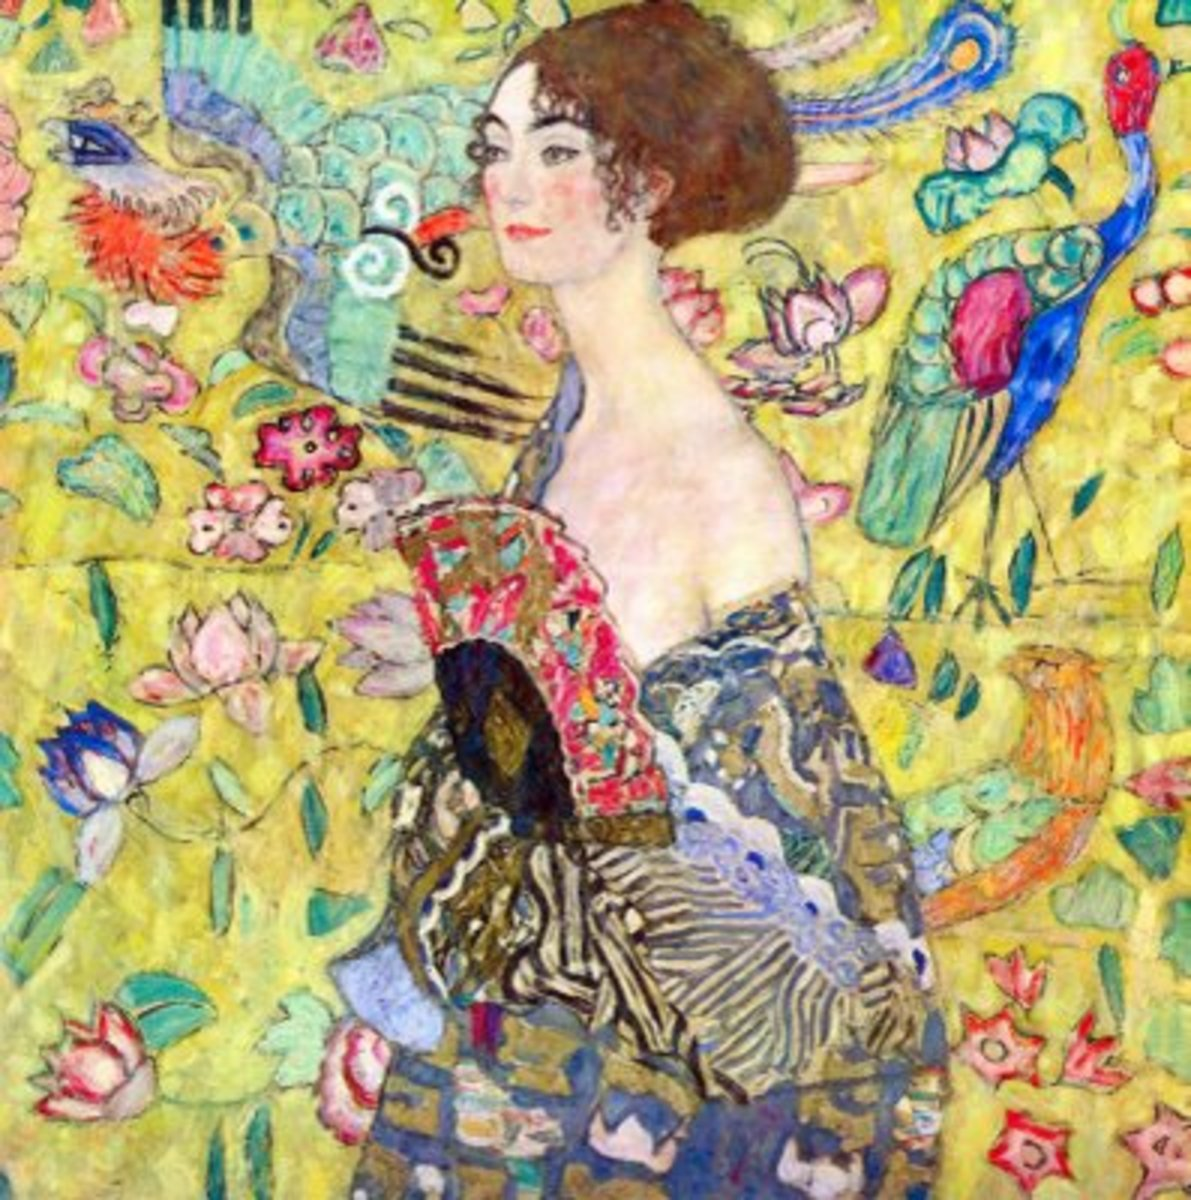 Gustav Klimt, Lady with Fan